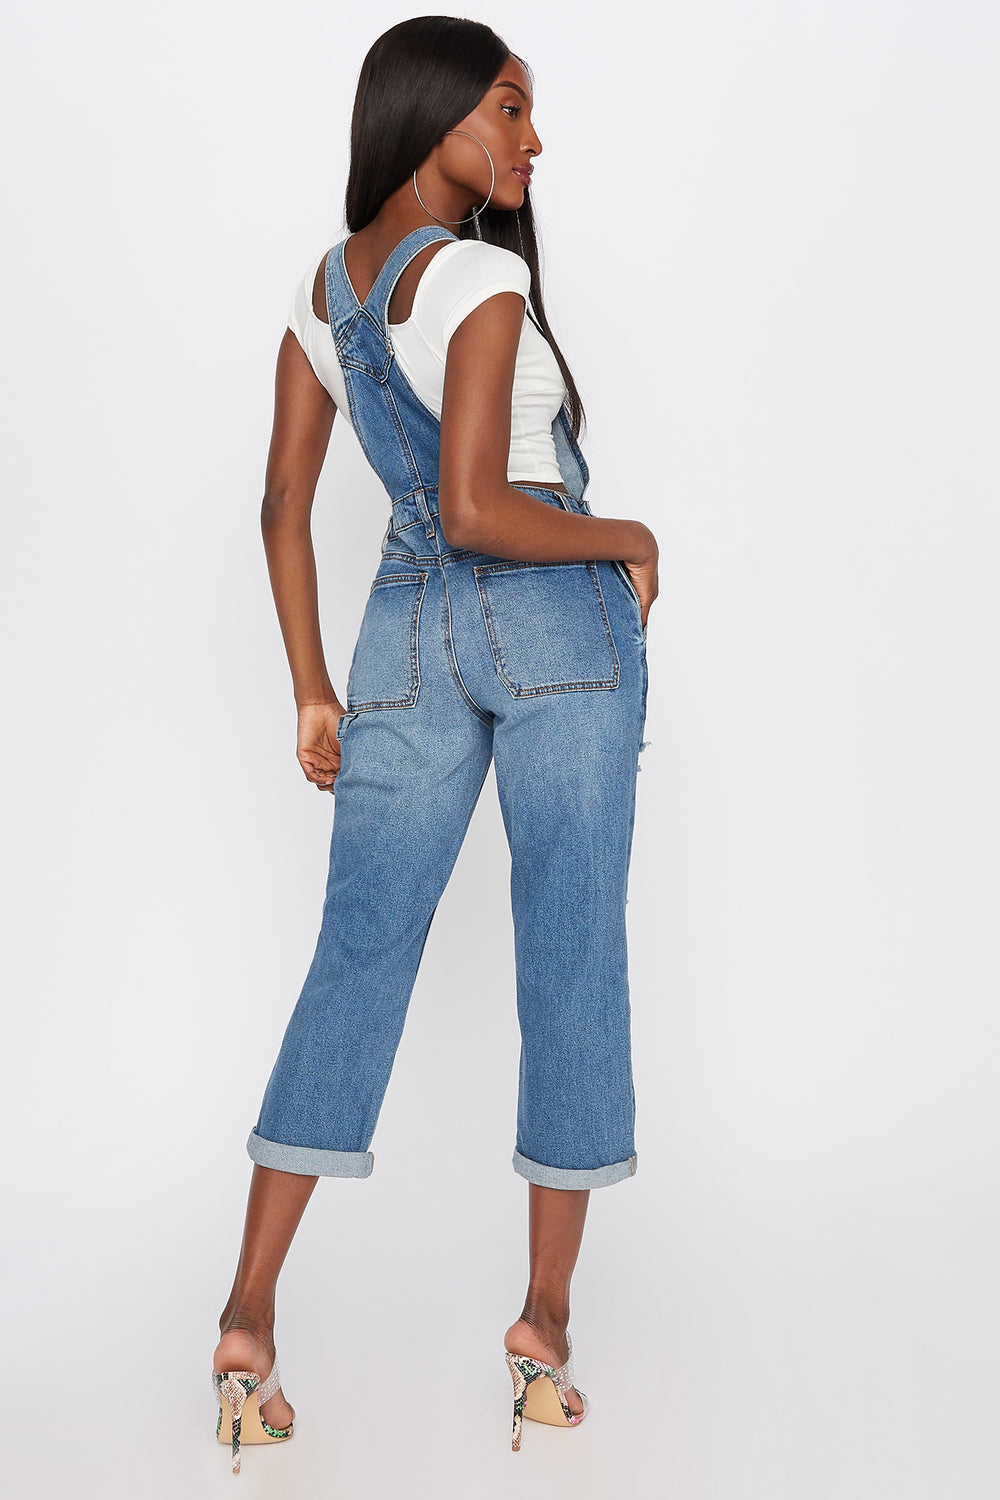 Refuge Light Wash Distressed Cuffed Denim Overall Navy Blue